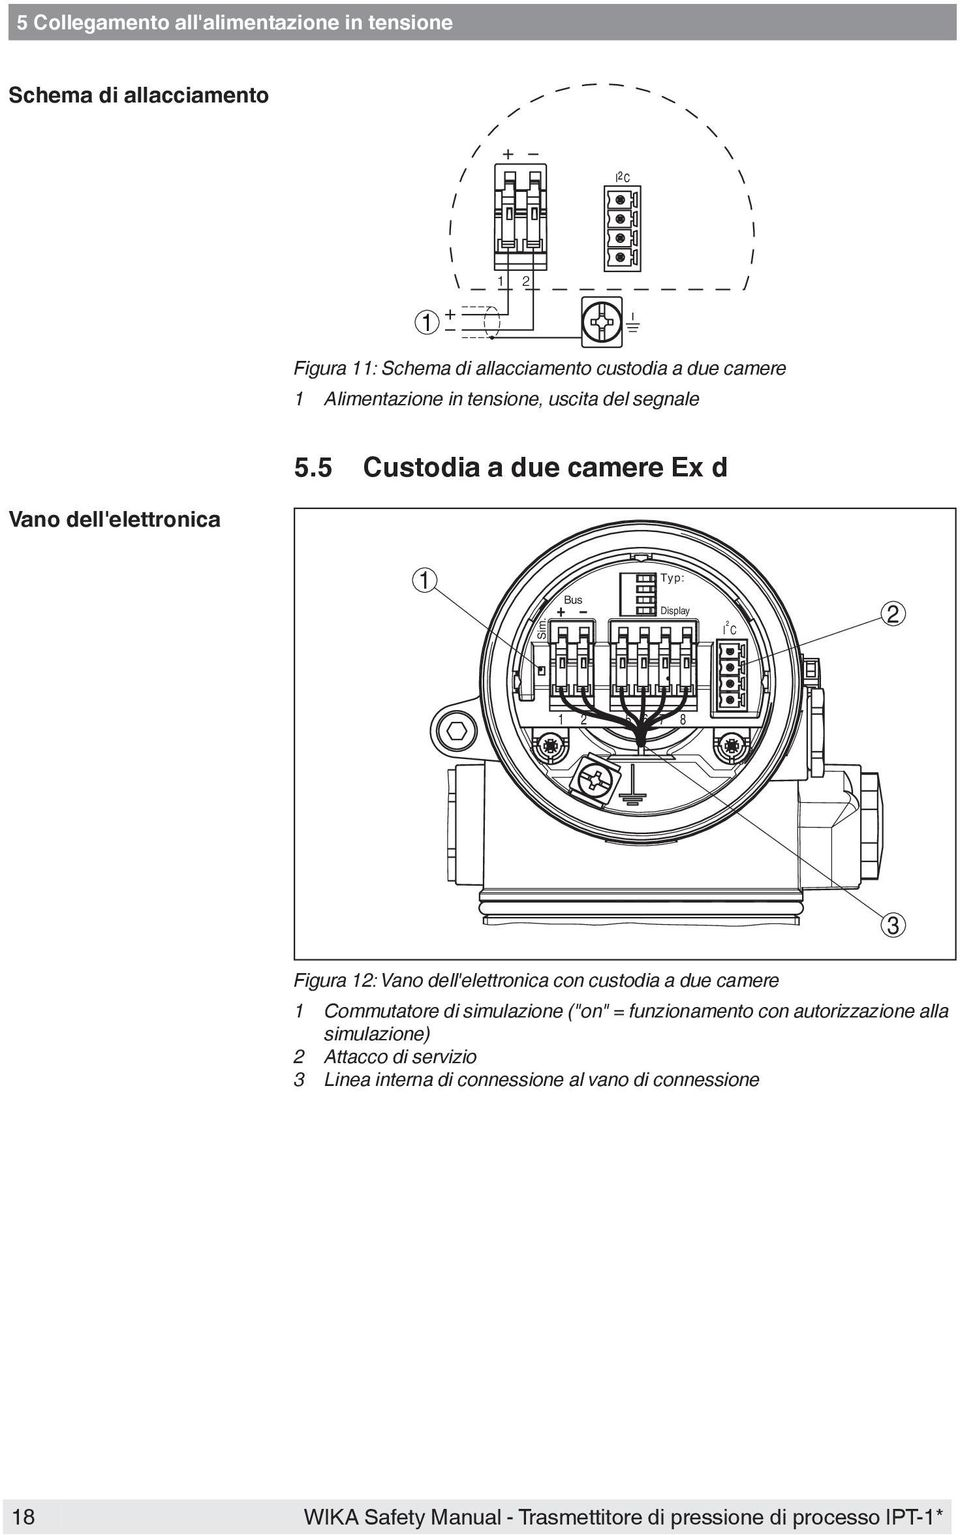 Bus Typ: Display I²C 2 1 2 5 6 7 8 Figura 12: Vano dell'elettronica con custodia a due camere 1 Commutatore di simulazione